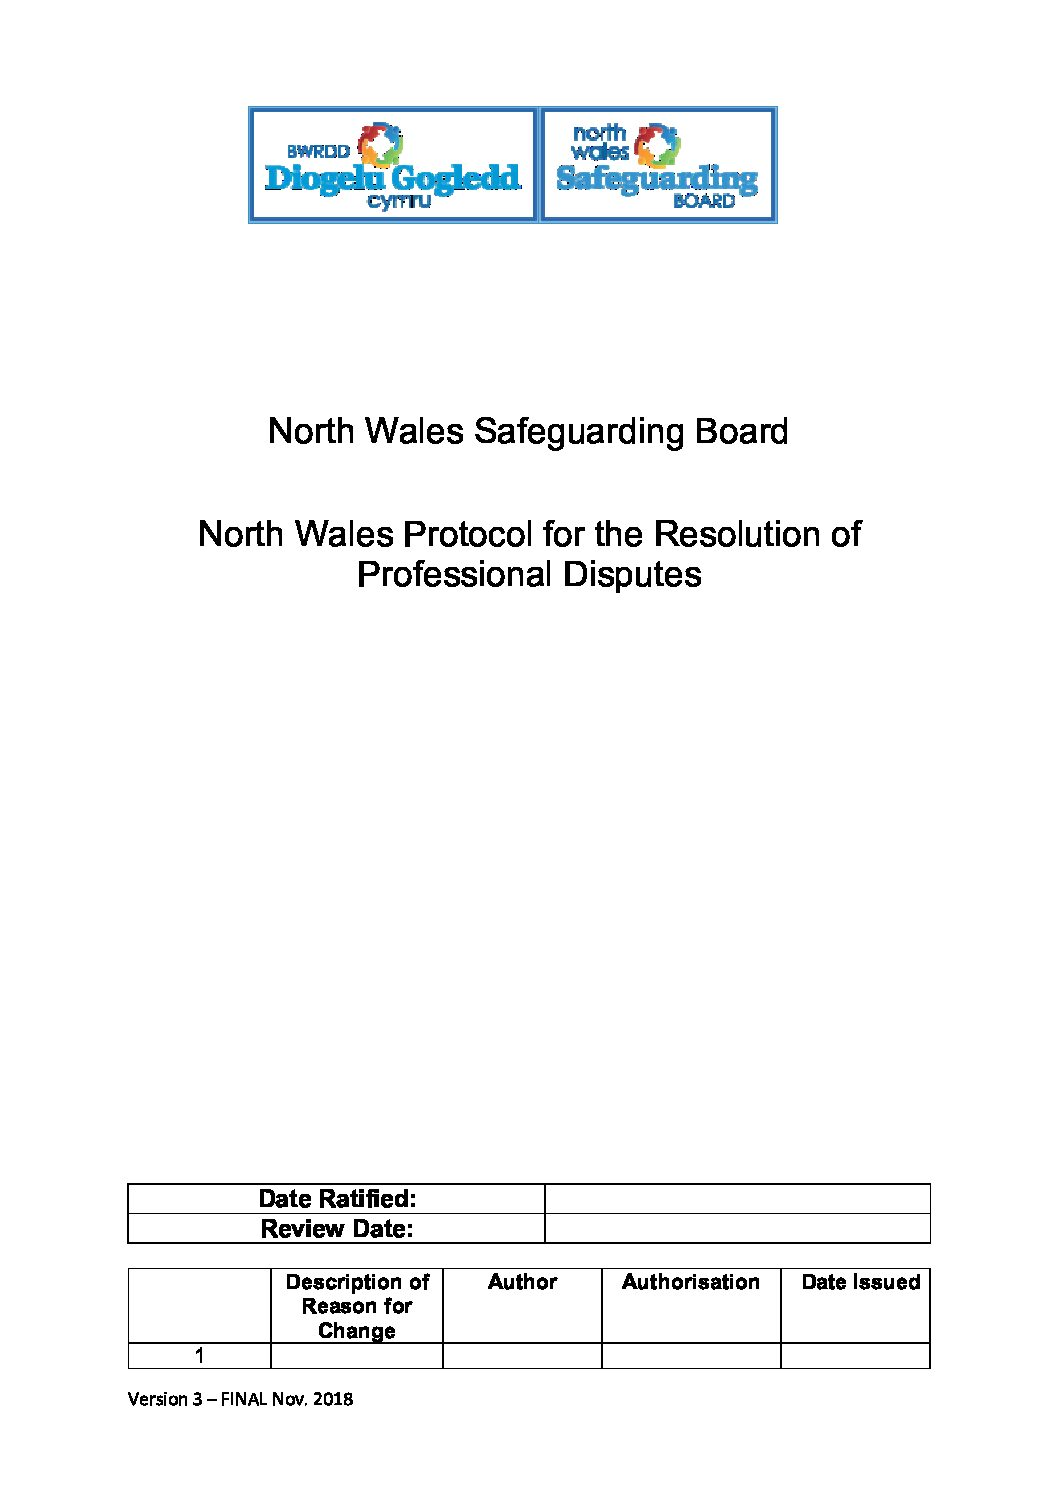 North Wales Protocol for the Resolution of Professional Differences